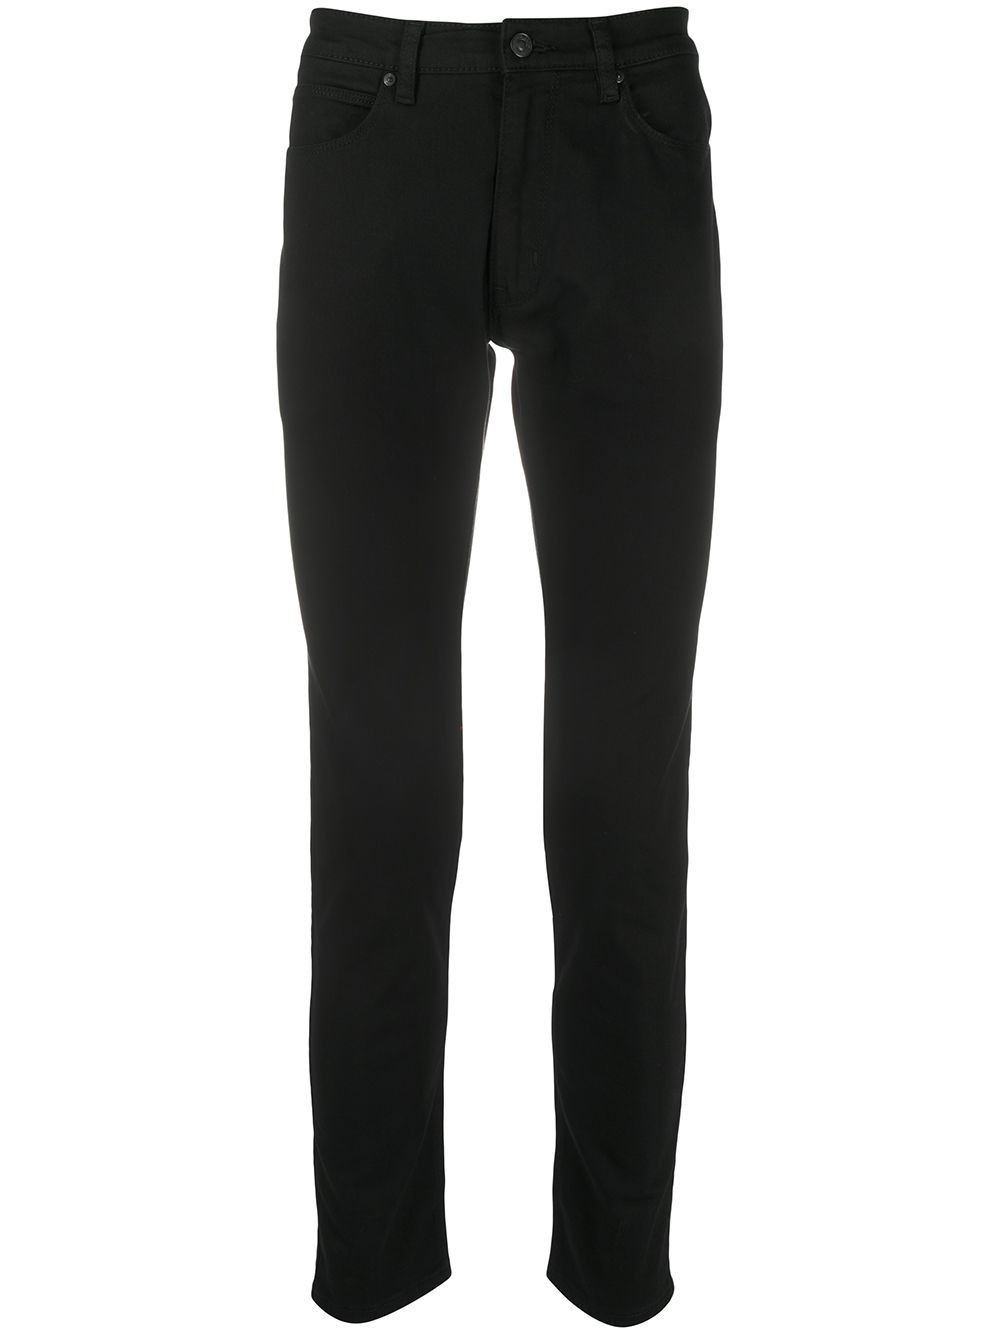 HUGO Extra Slim Fit Jeans Black - Maison De Fashion